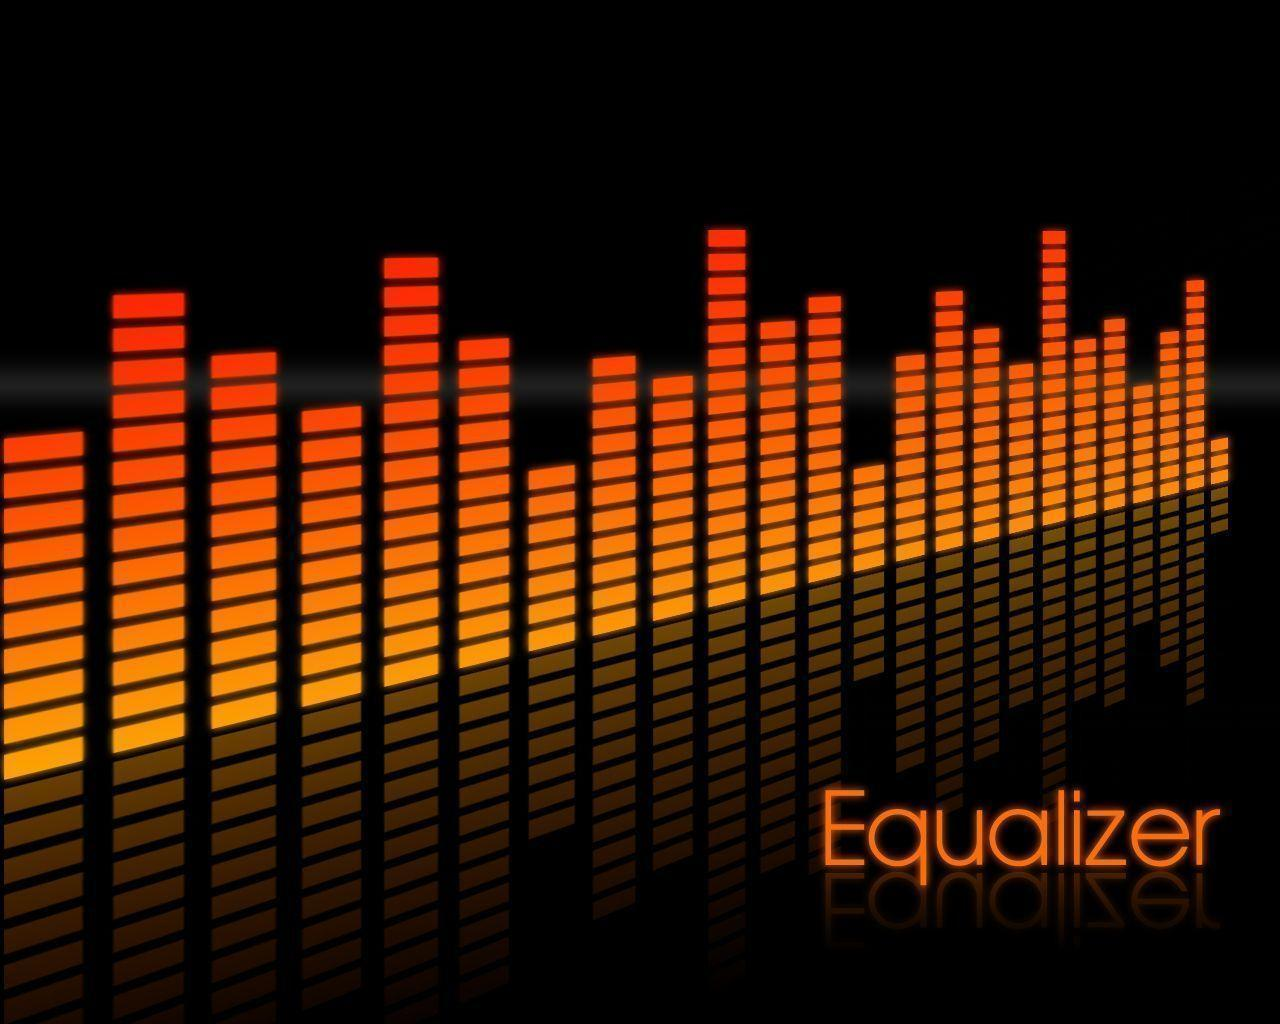 Music Bars Wallpaper: Equalizer Wallpapers